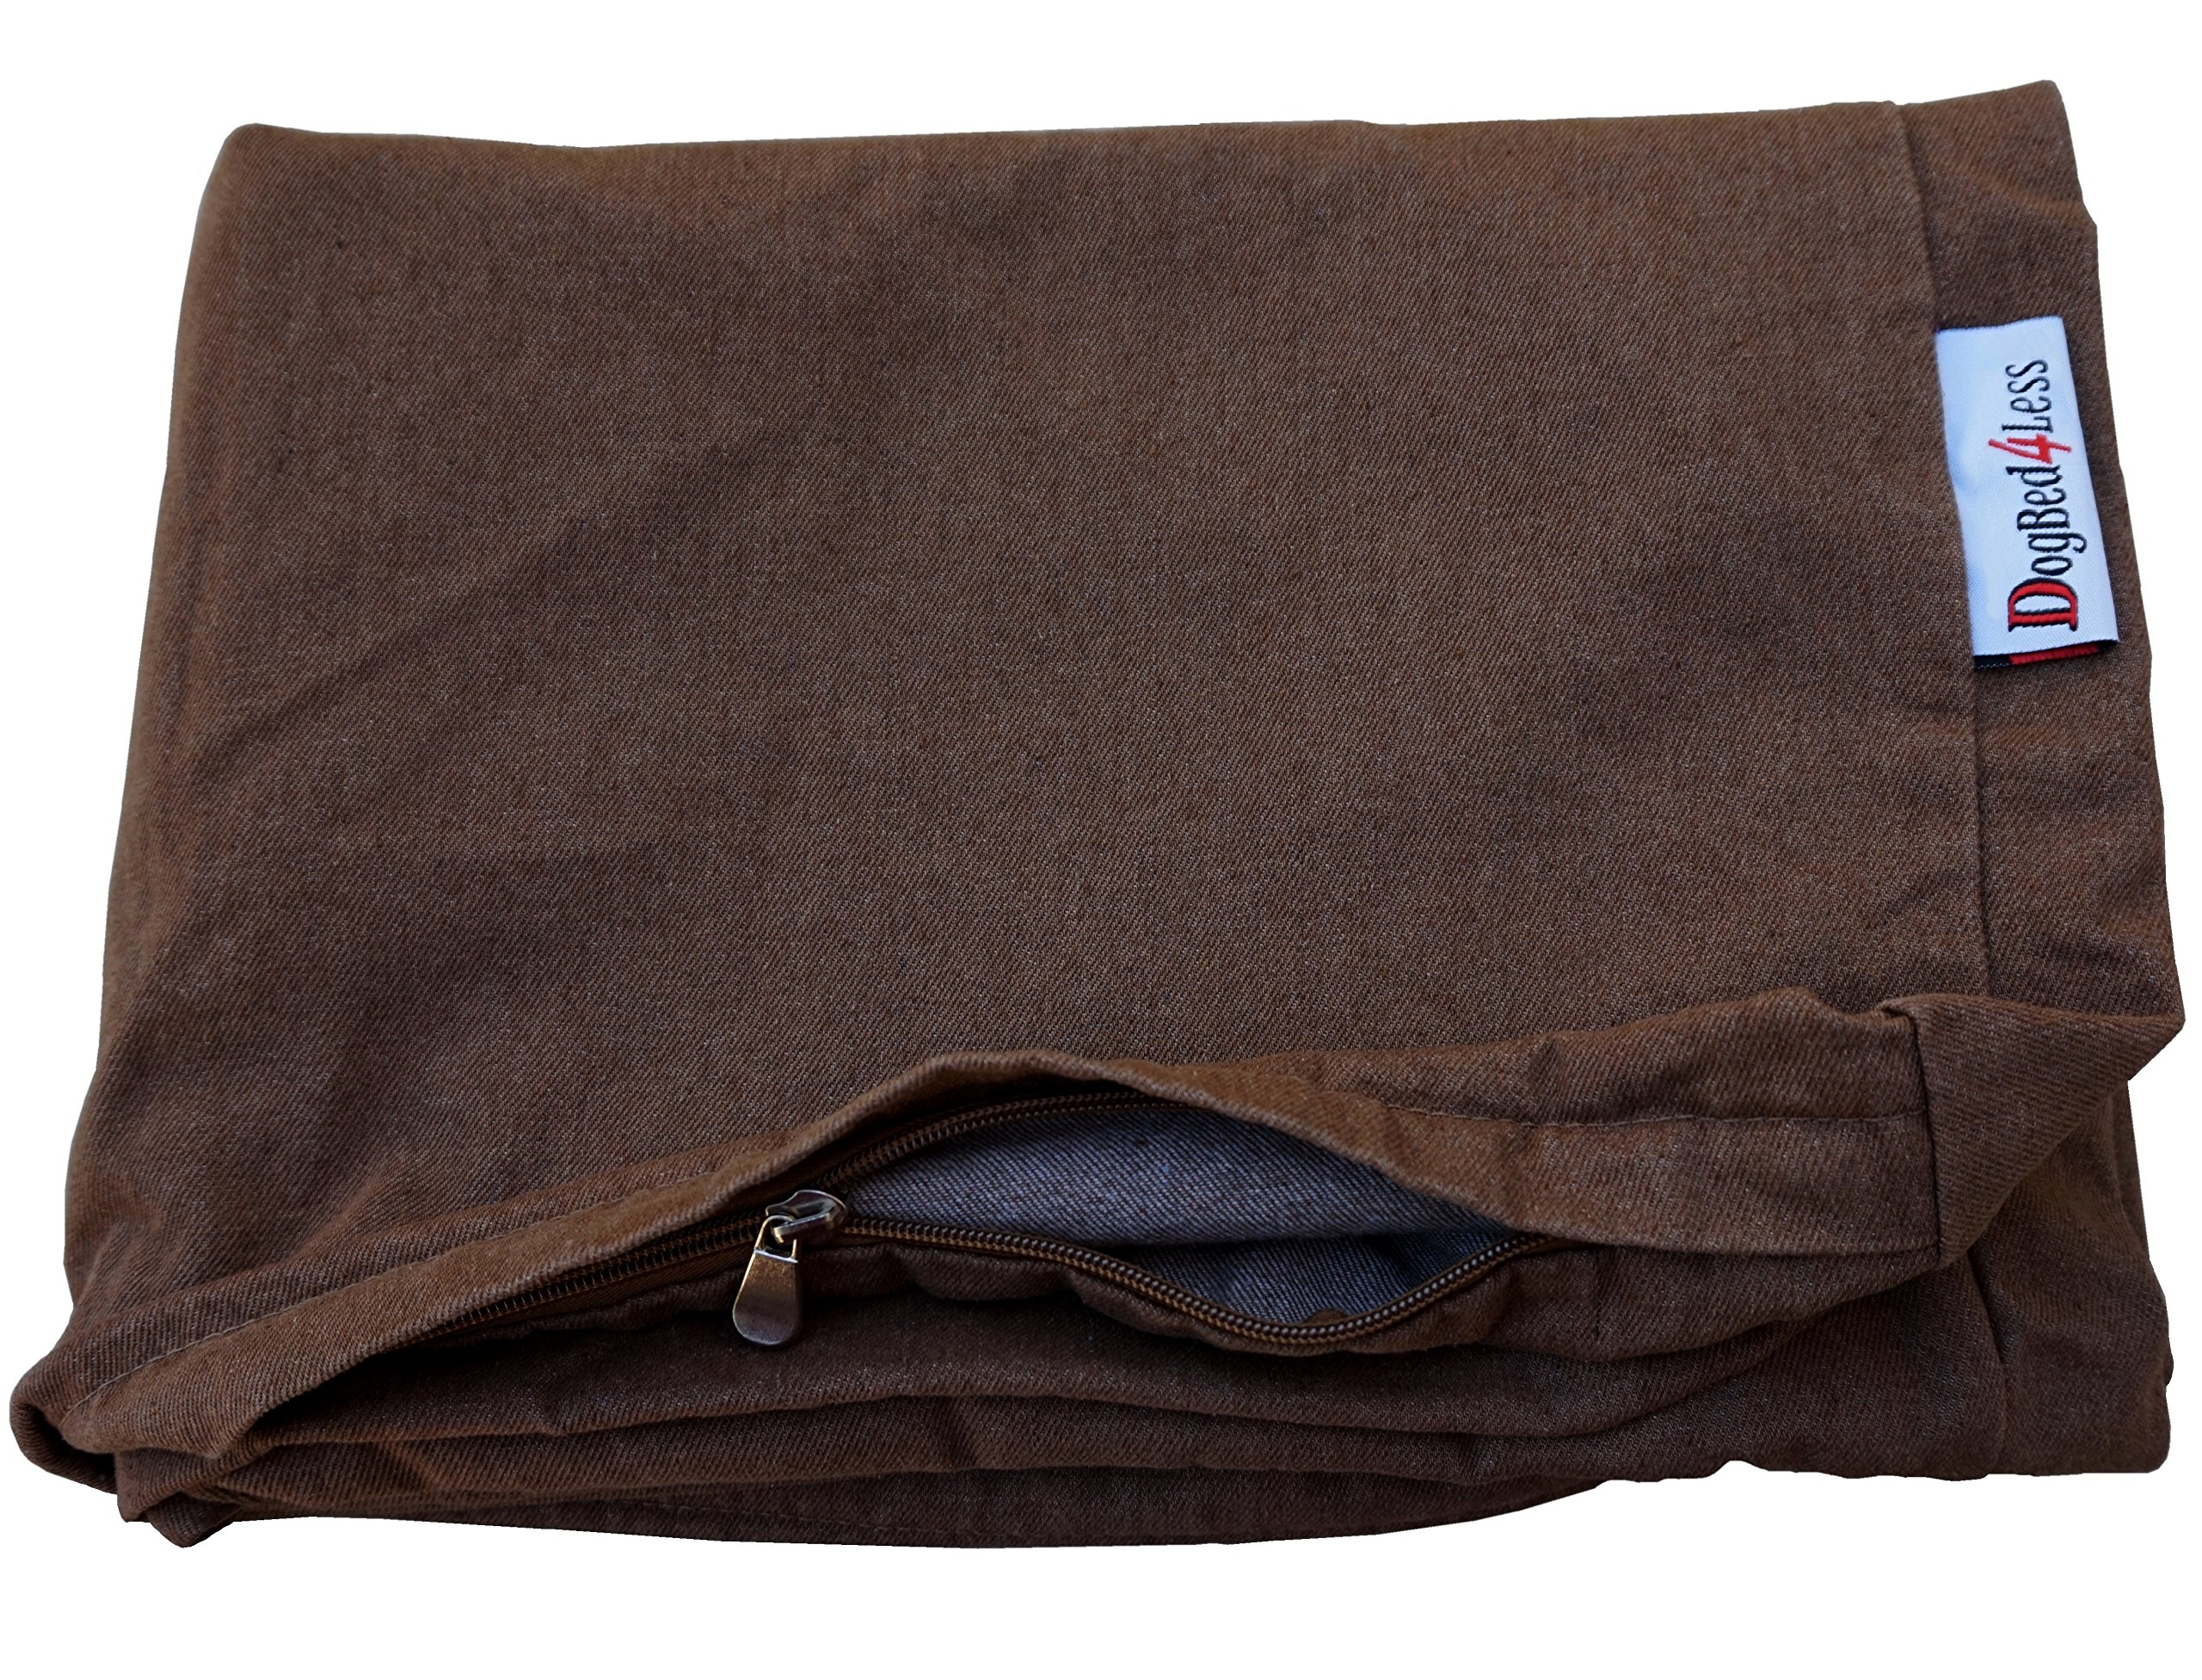 Dogbed4less 37X27X4 Inches size Brown Color Denim Jean Dog Pet Bed External zipper Cover - Replacement cover only